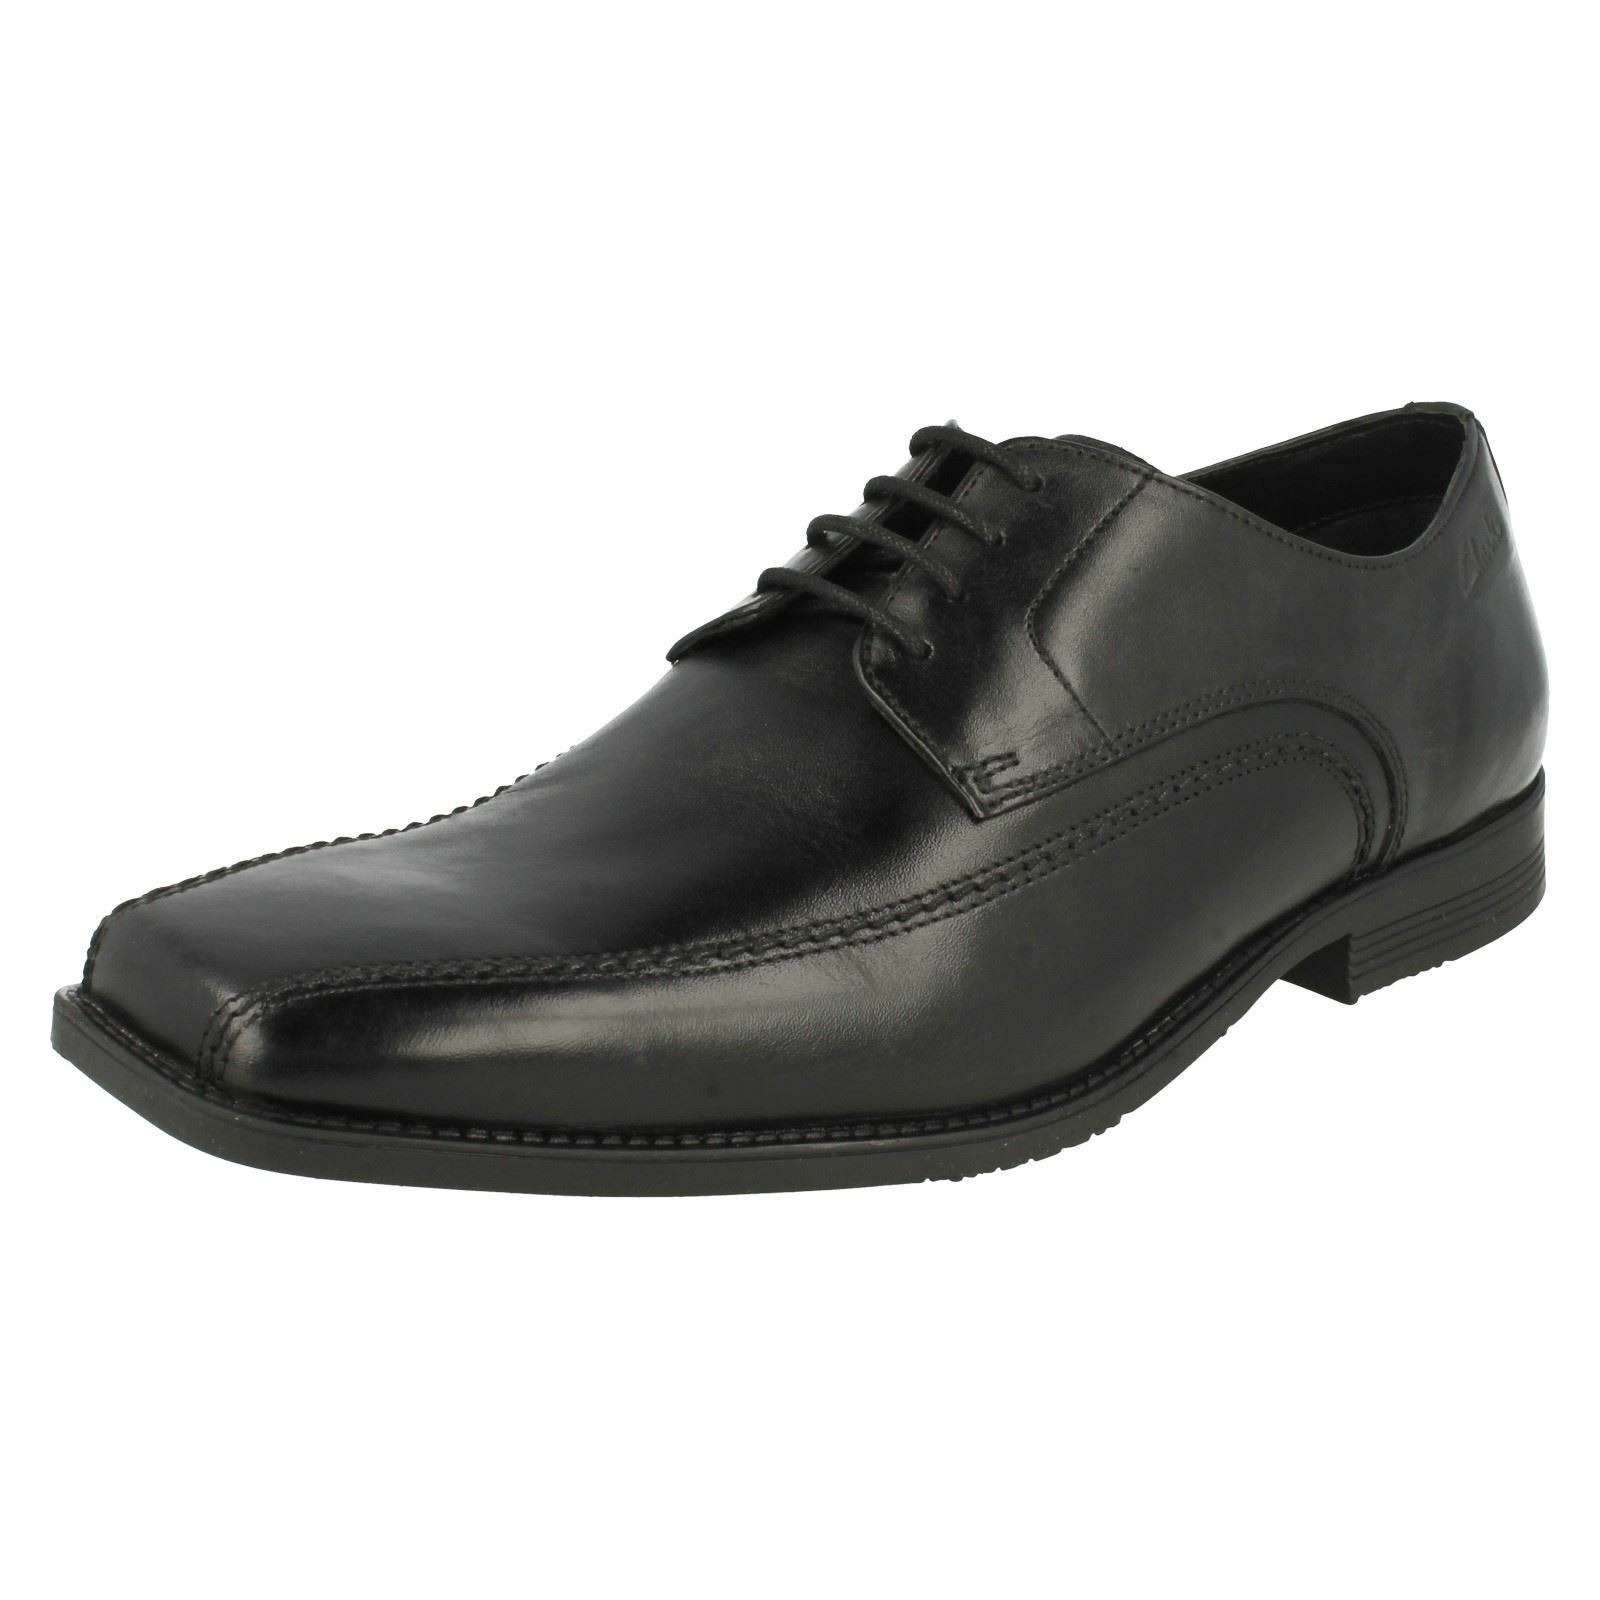 Clarks  Uomo Formal Lace Lace Up Schuhes Baker Lace Lace 94b711